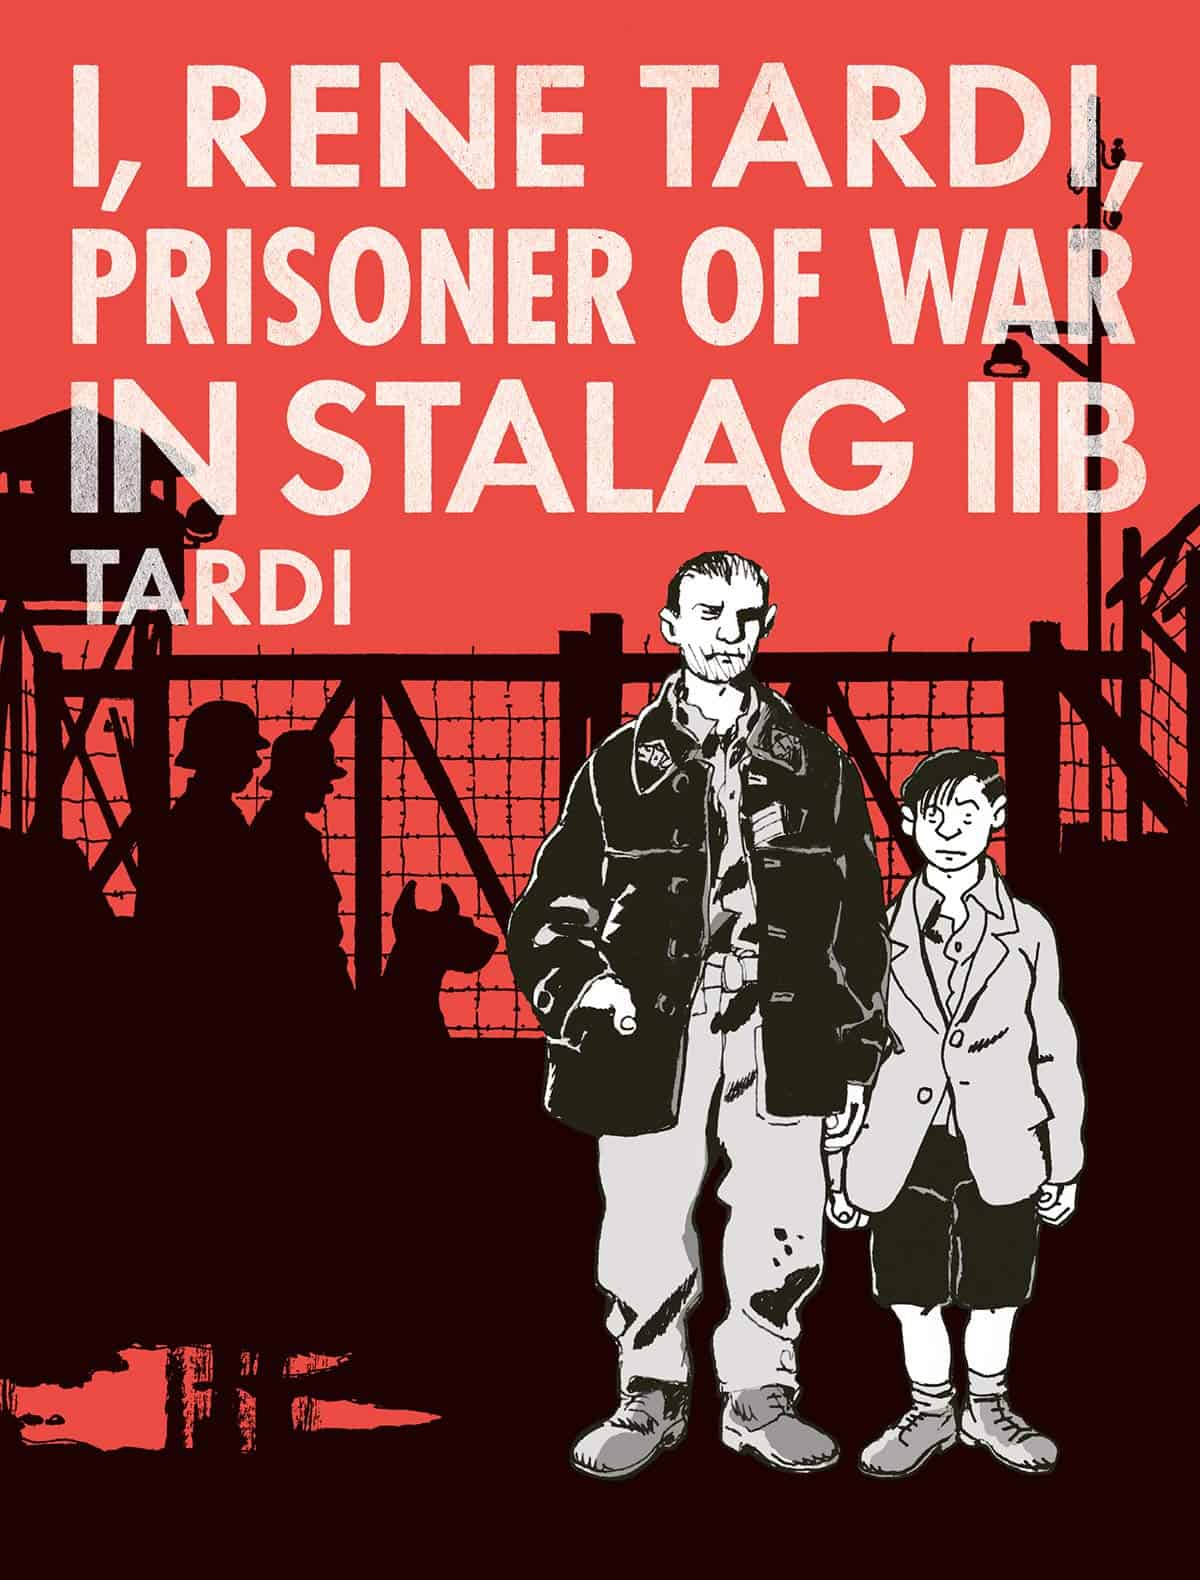 I Rene Tardi Prisoner Of War In Stalag IIB by Jacques Tardi